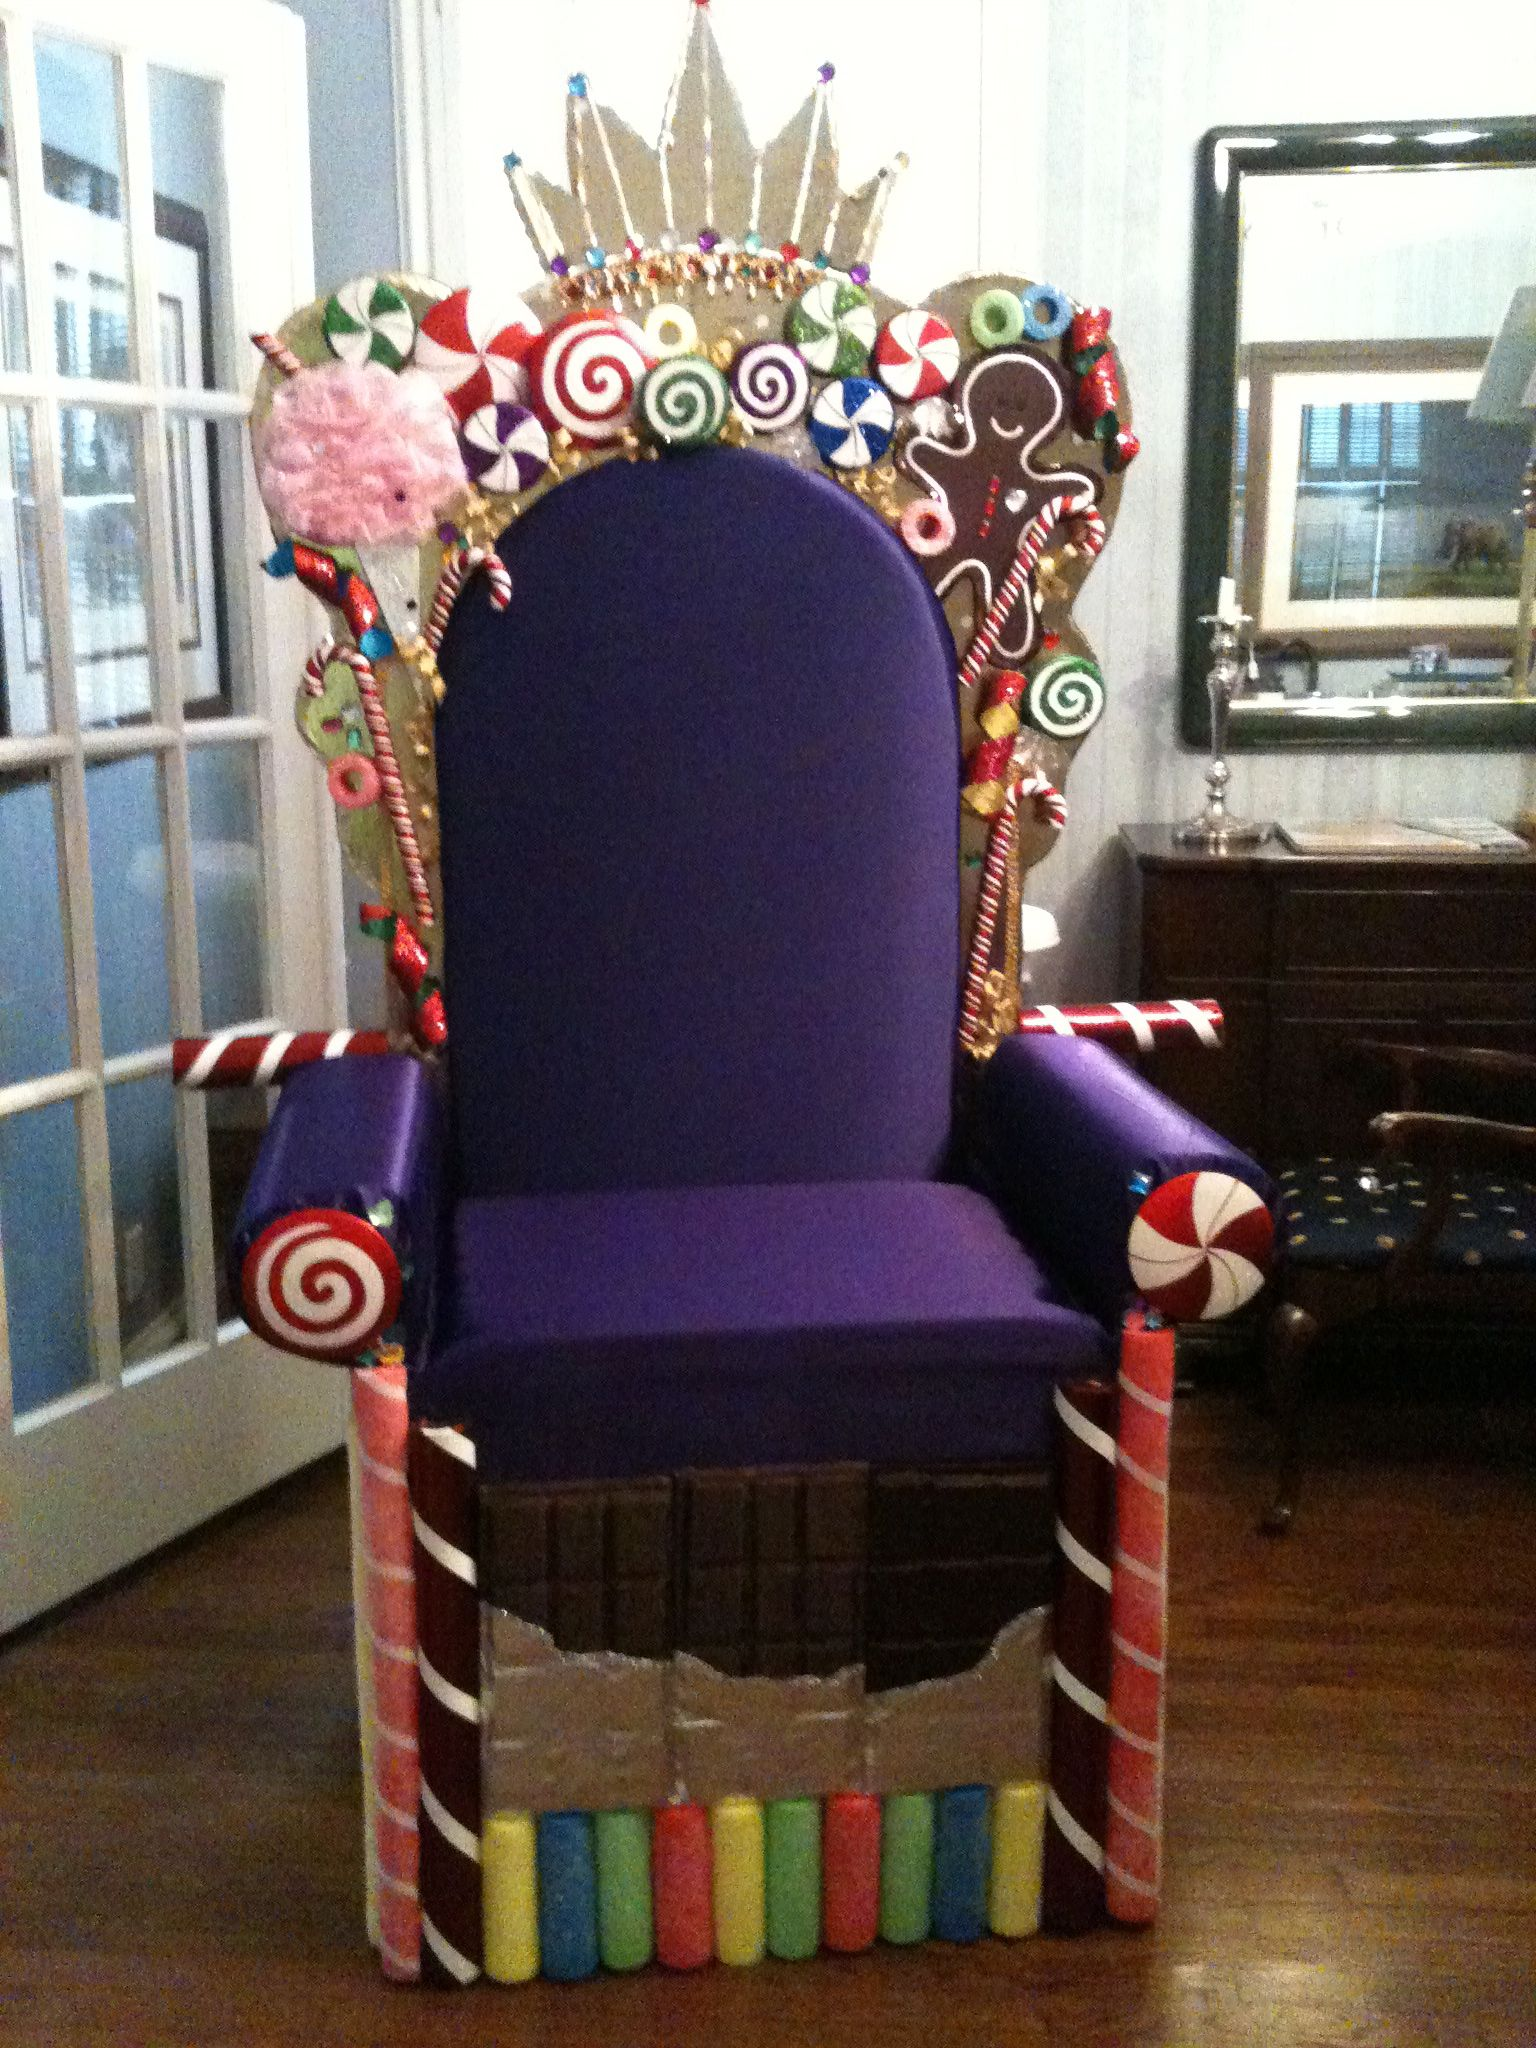 The candy king 39 s throne church christmas program my for Diy king throne chair